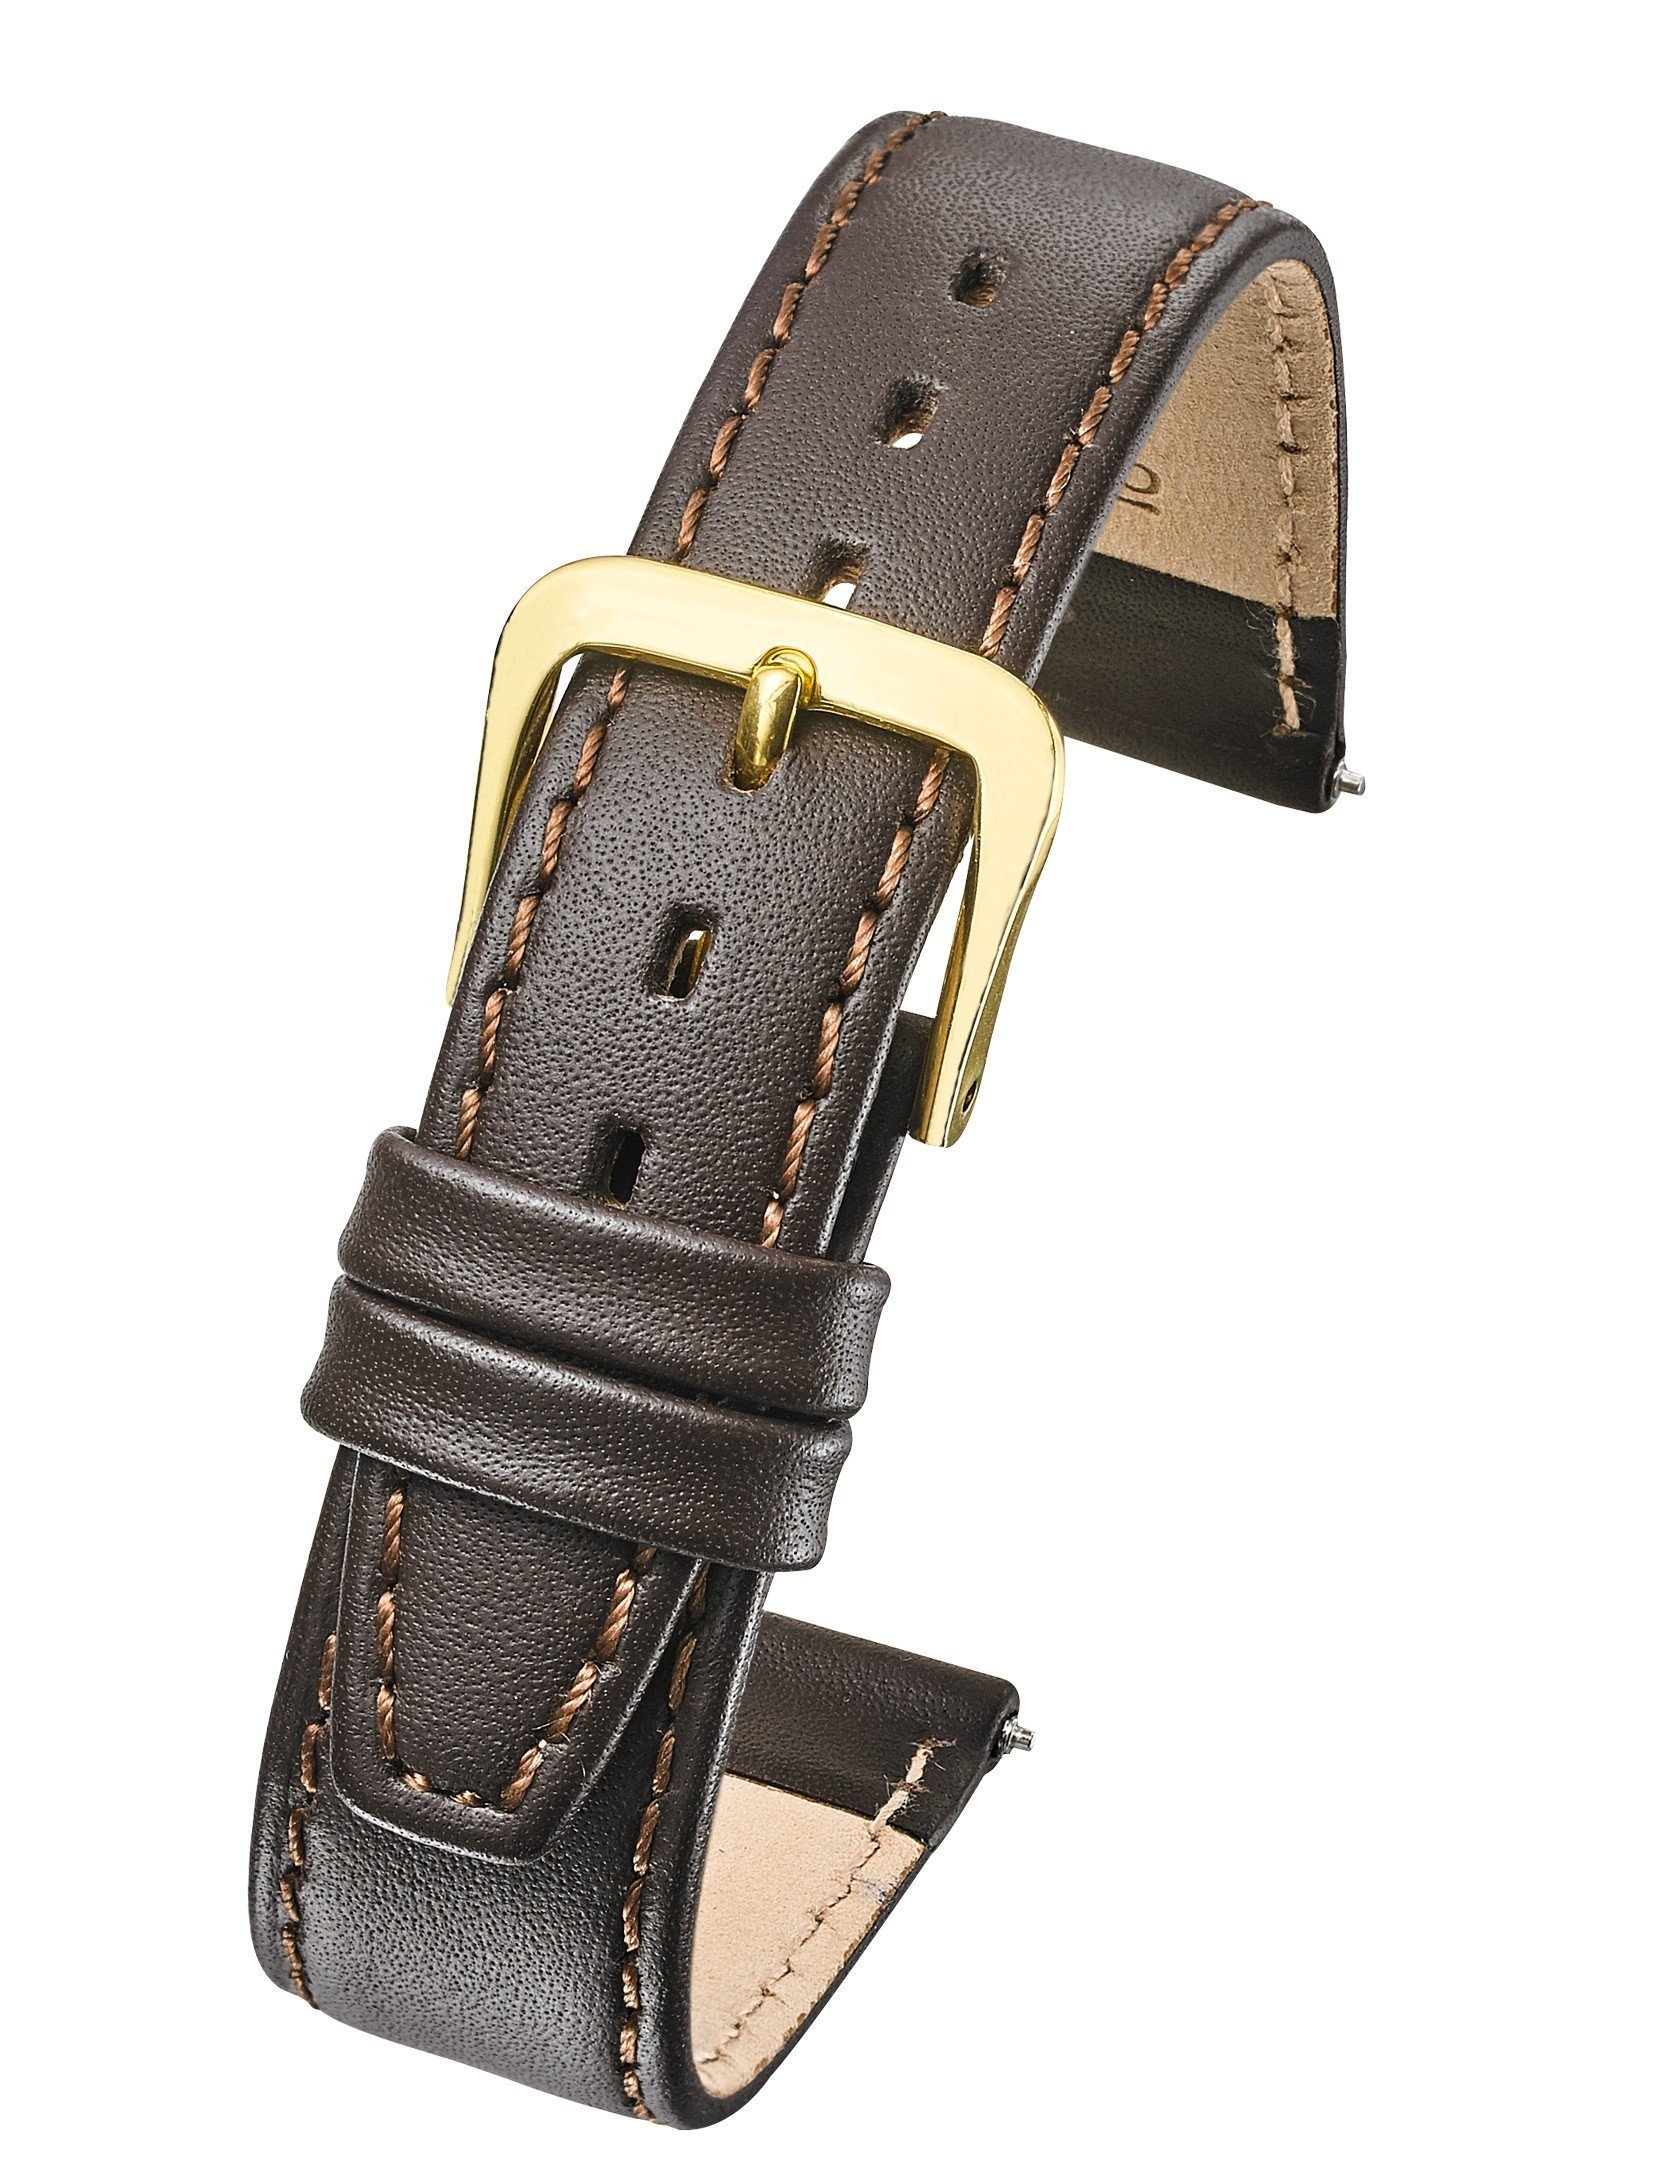 Genuine Leather Watch Band - Flat Stitched Calf Leather Watch Strap 12mm - Brown